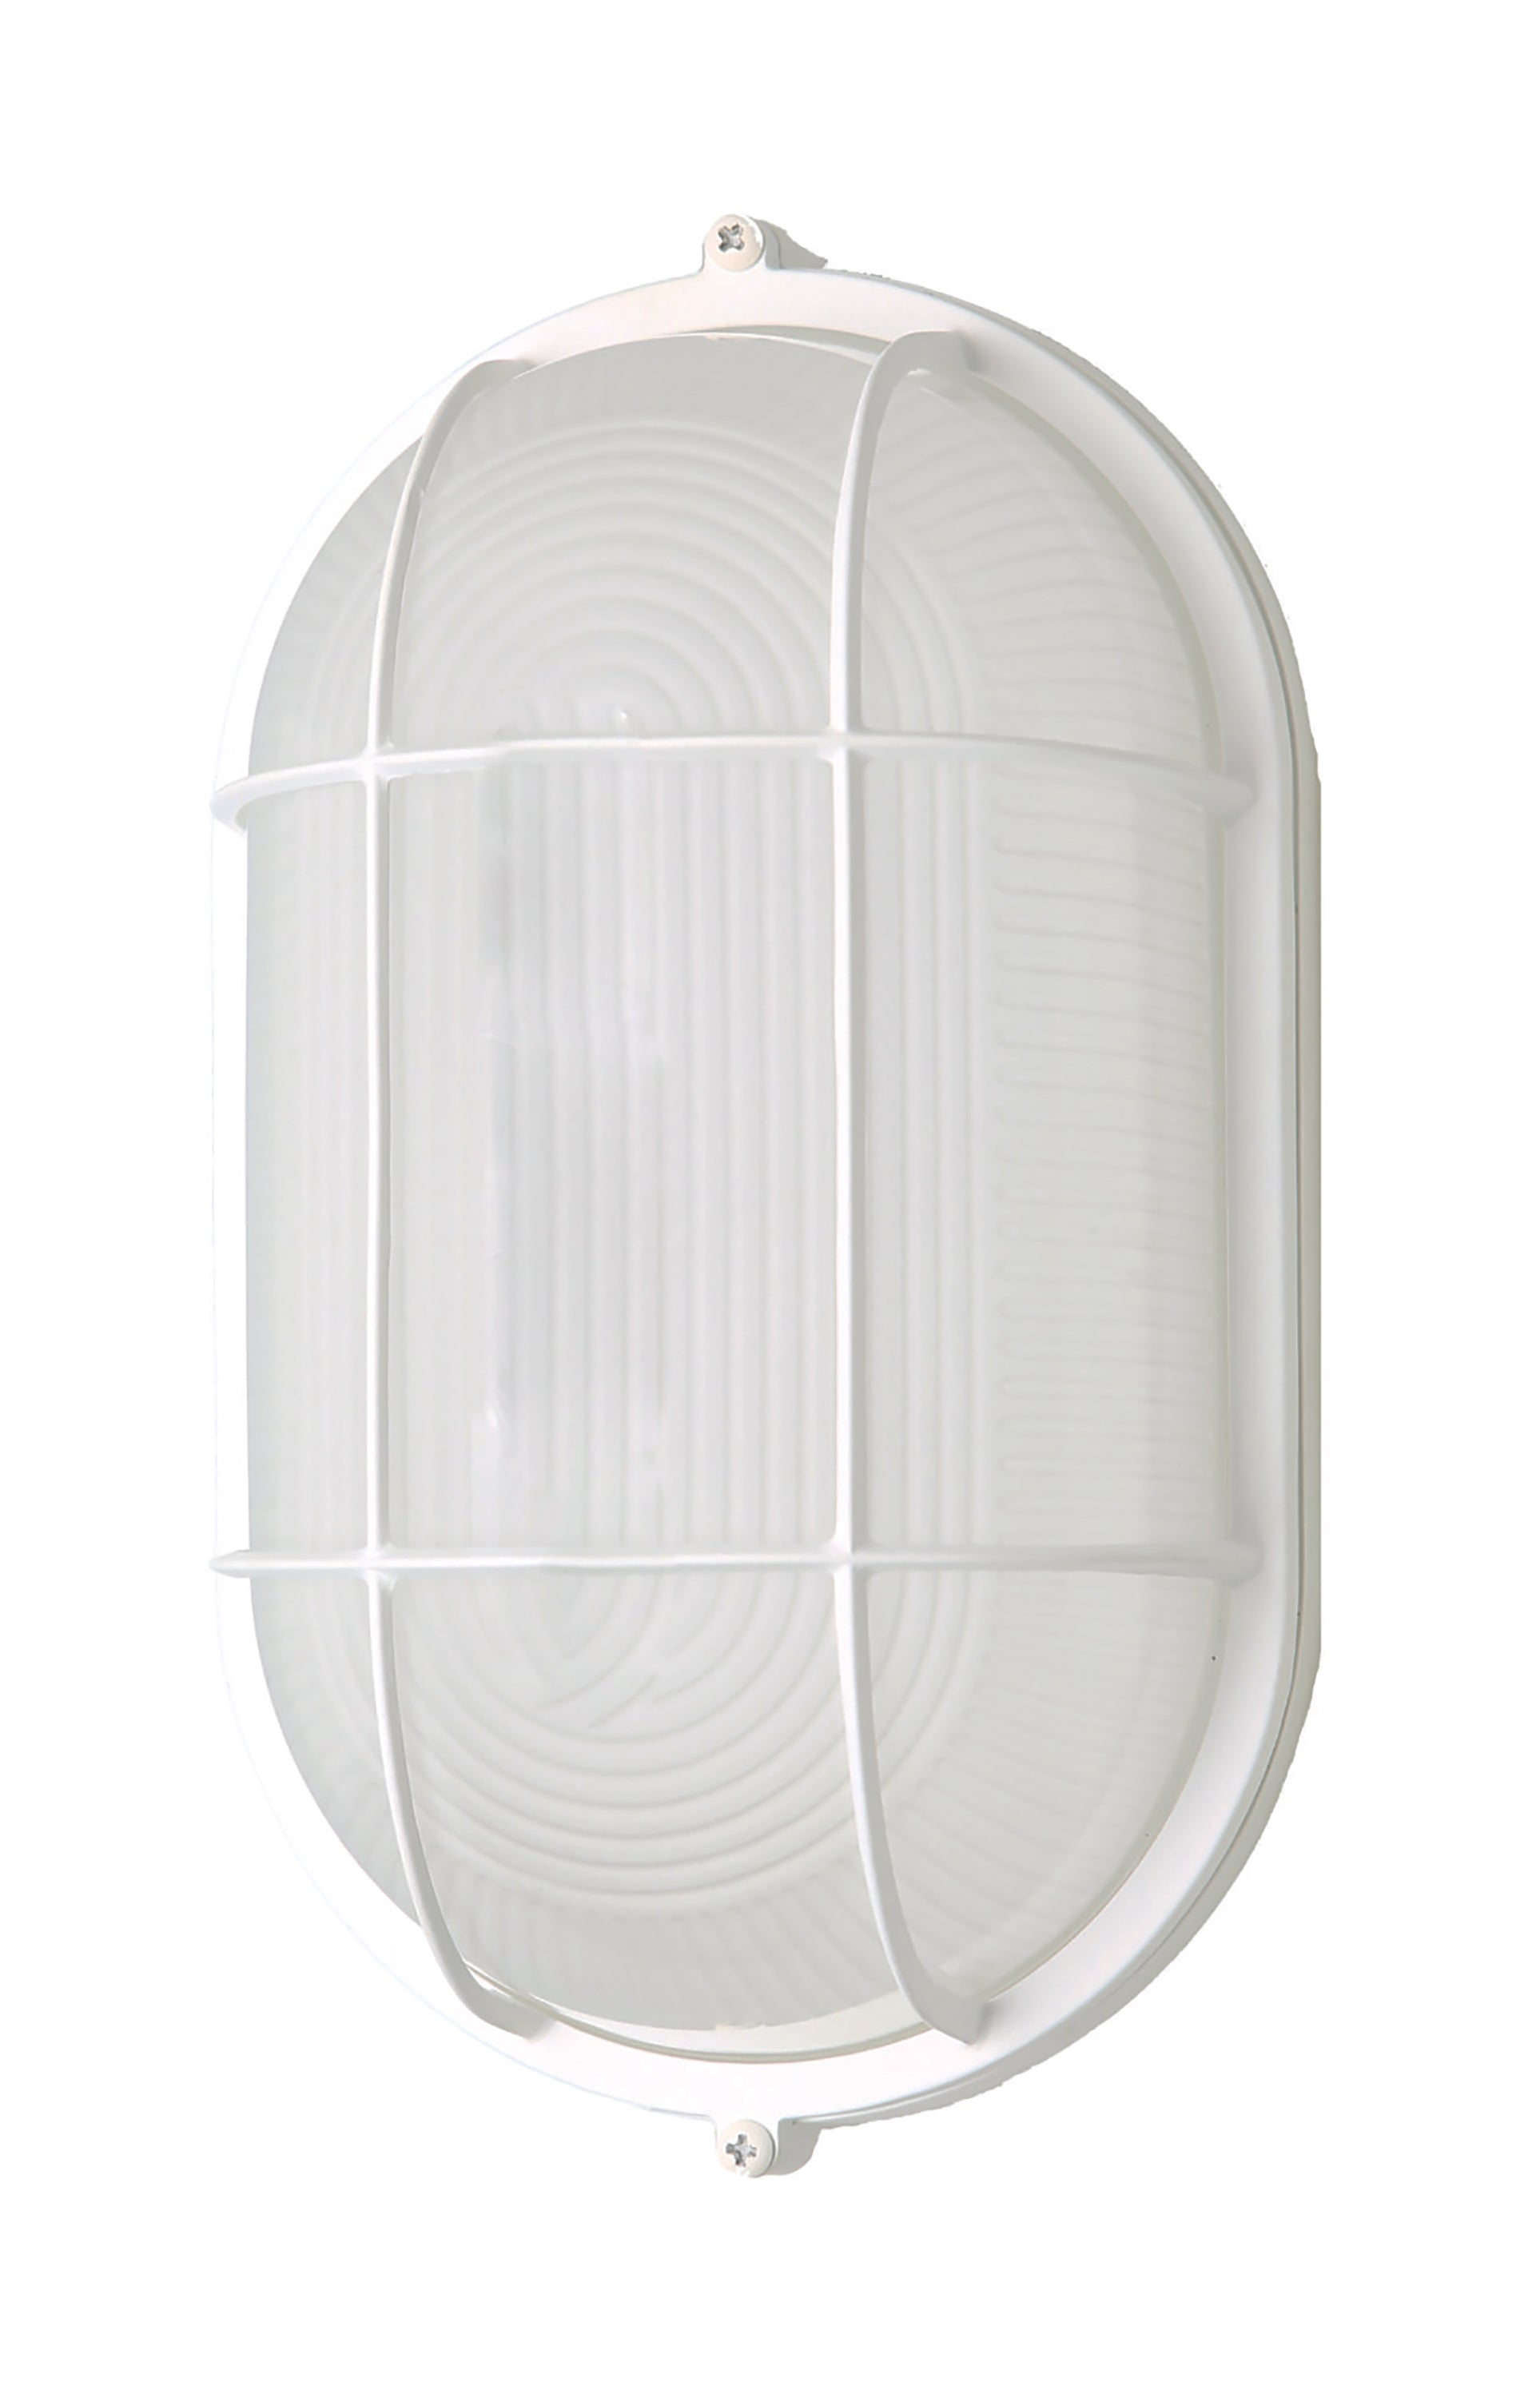 Nuvo 18.5w LED Oval Bulk Head Fixture w/ White Glass in White Finish